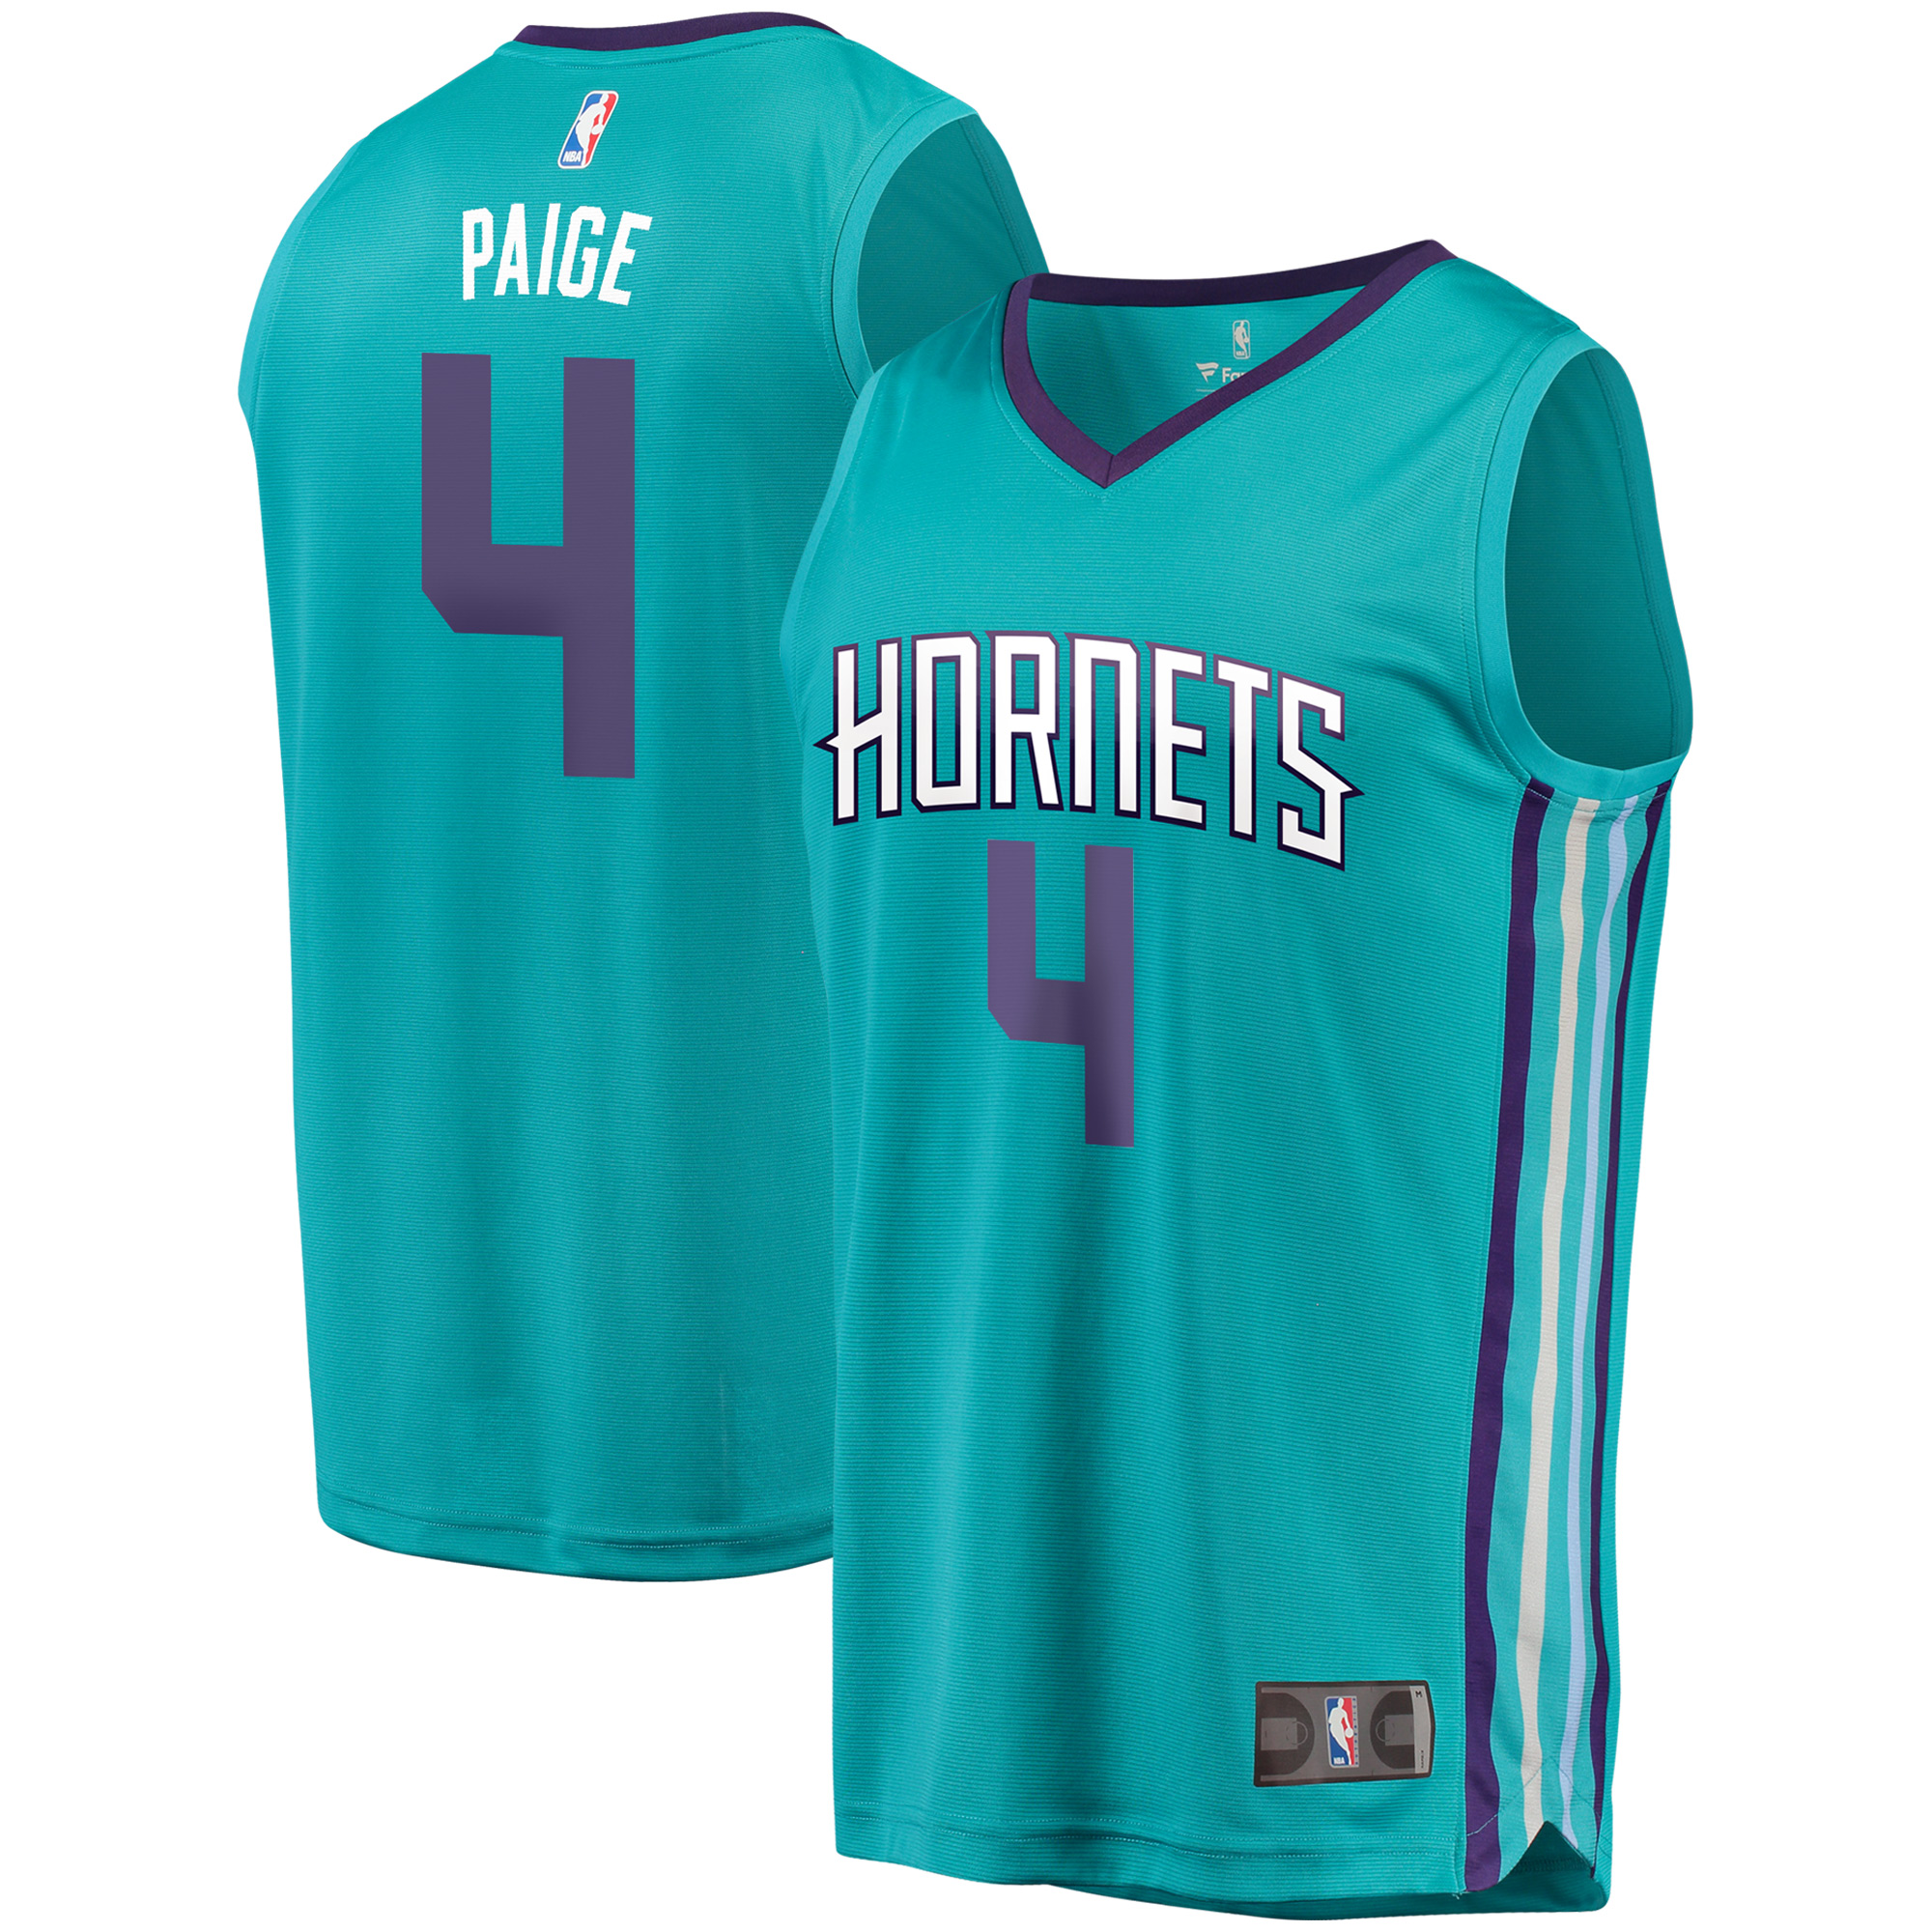 Marcus Paige Charlotte Hornets Fanatics Branded Fast Break Replica Player Jersey - Icon Edition - Teal